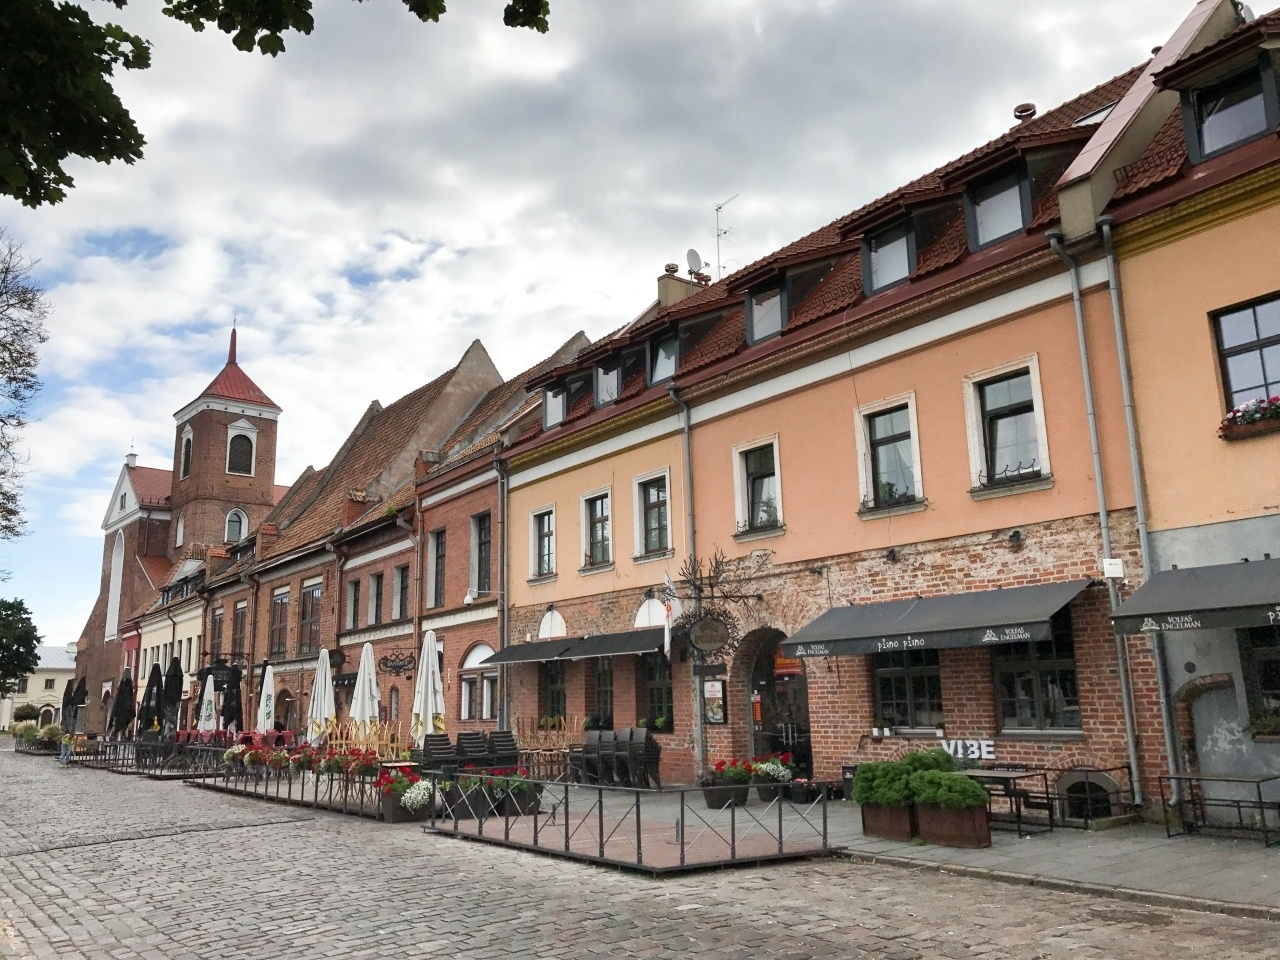 What to do in Kaunas? Search out one of the many streetside cafes!